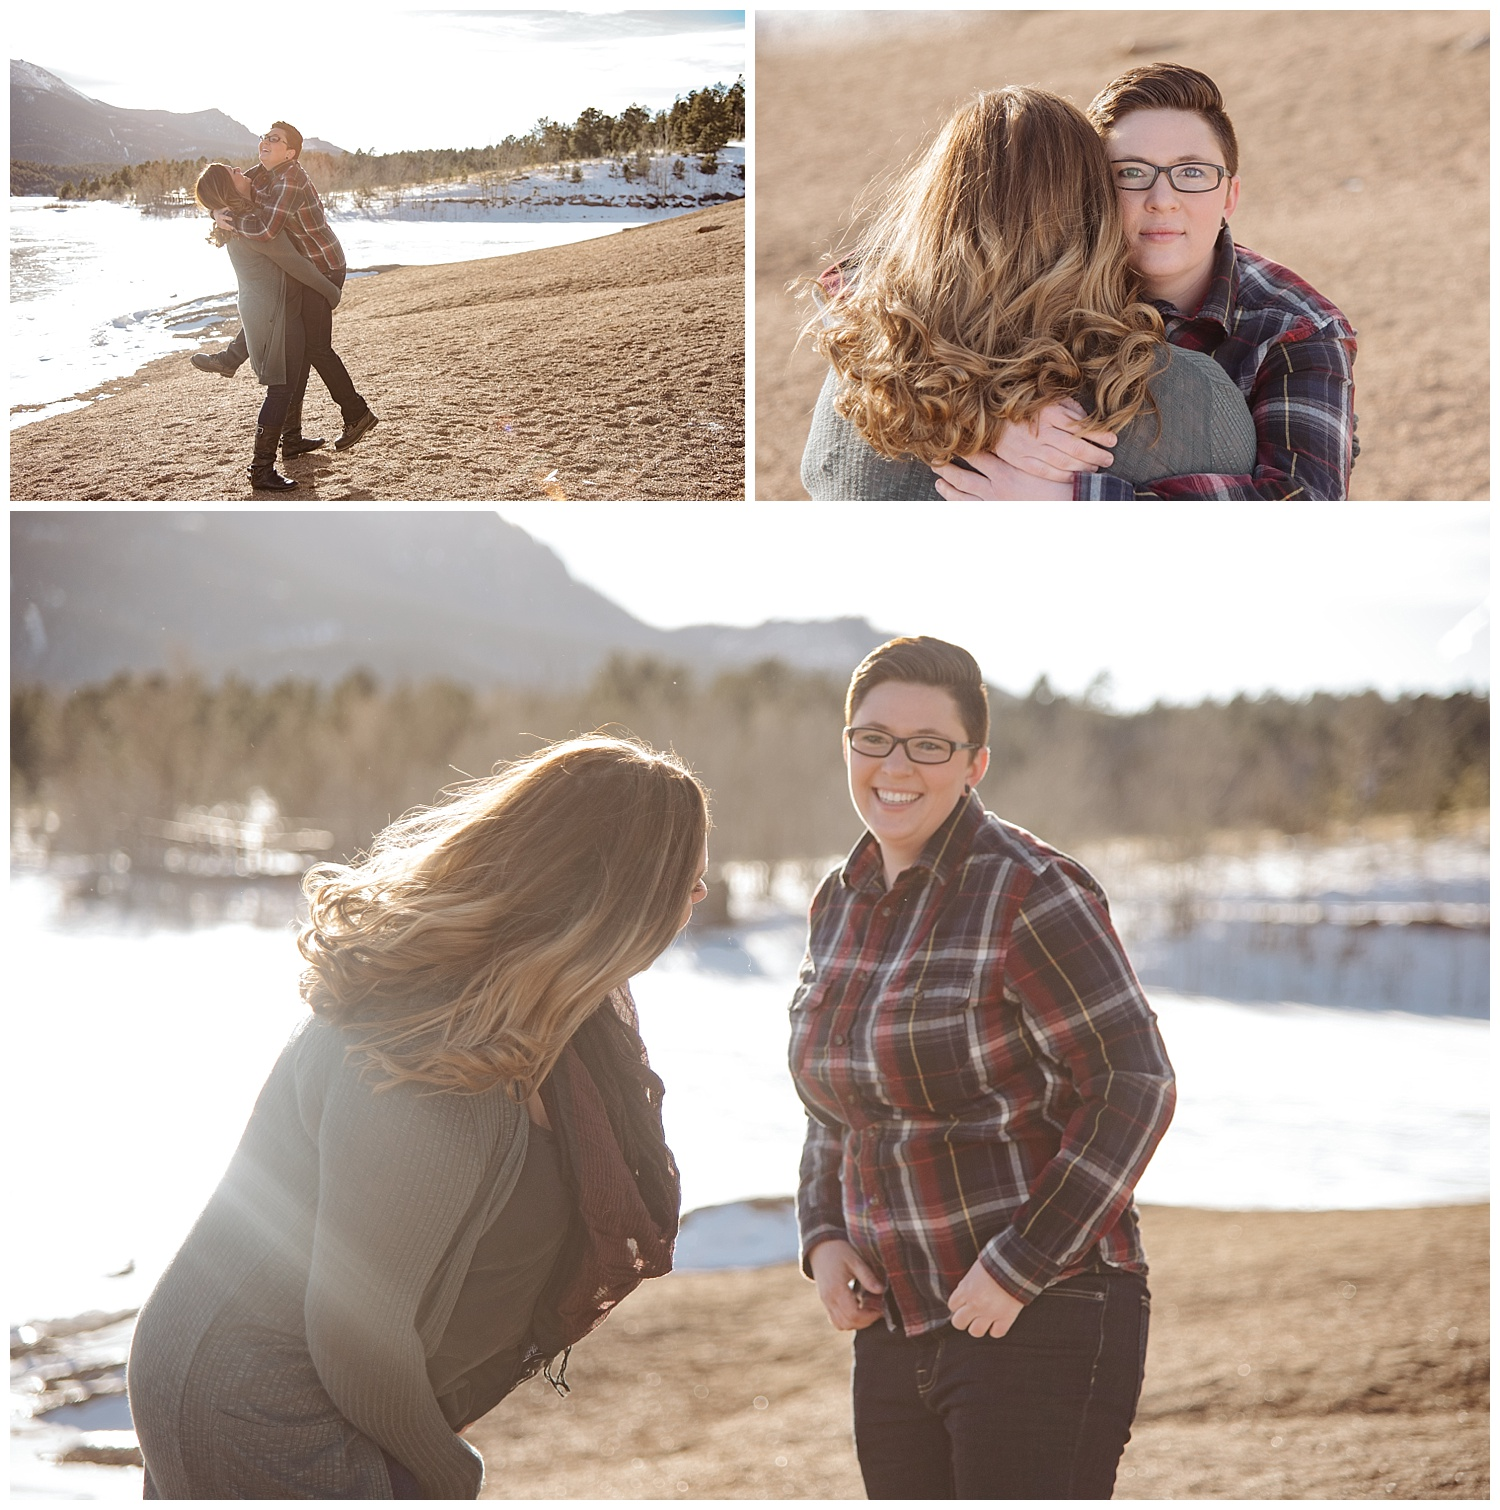 Young Family Goofing Around | Jenny and Tara's Epic Mountain Engagement Session | Pikes Peak, Colorado Photography | Farm Wedding Photographer | Apollo Fields Wedding Photojournalism